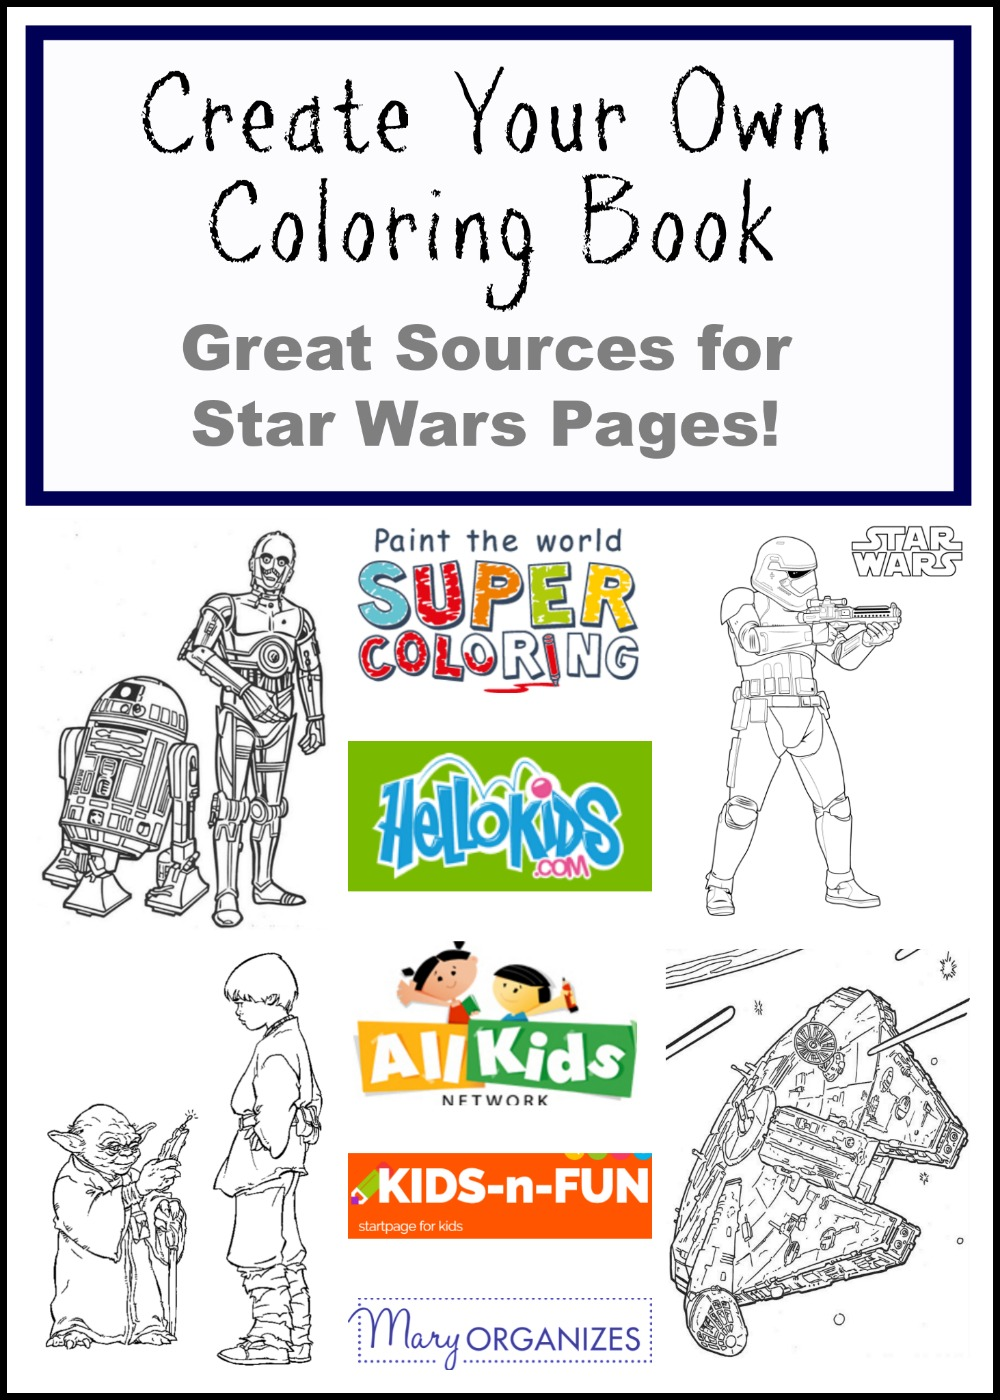 create-your-own-coloring-book-great-sources-for-star-wars-pages